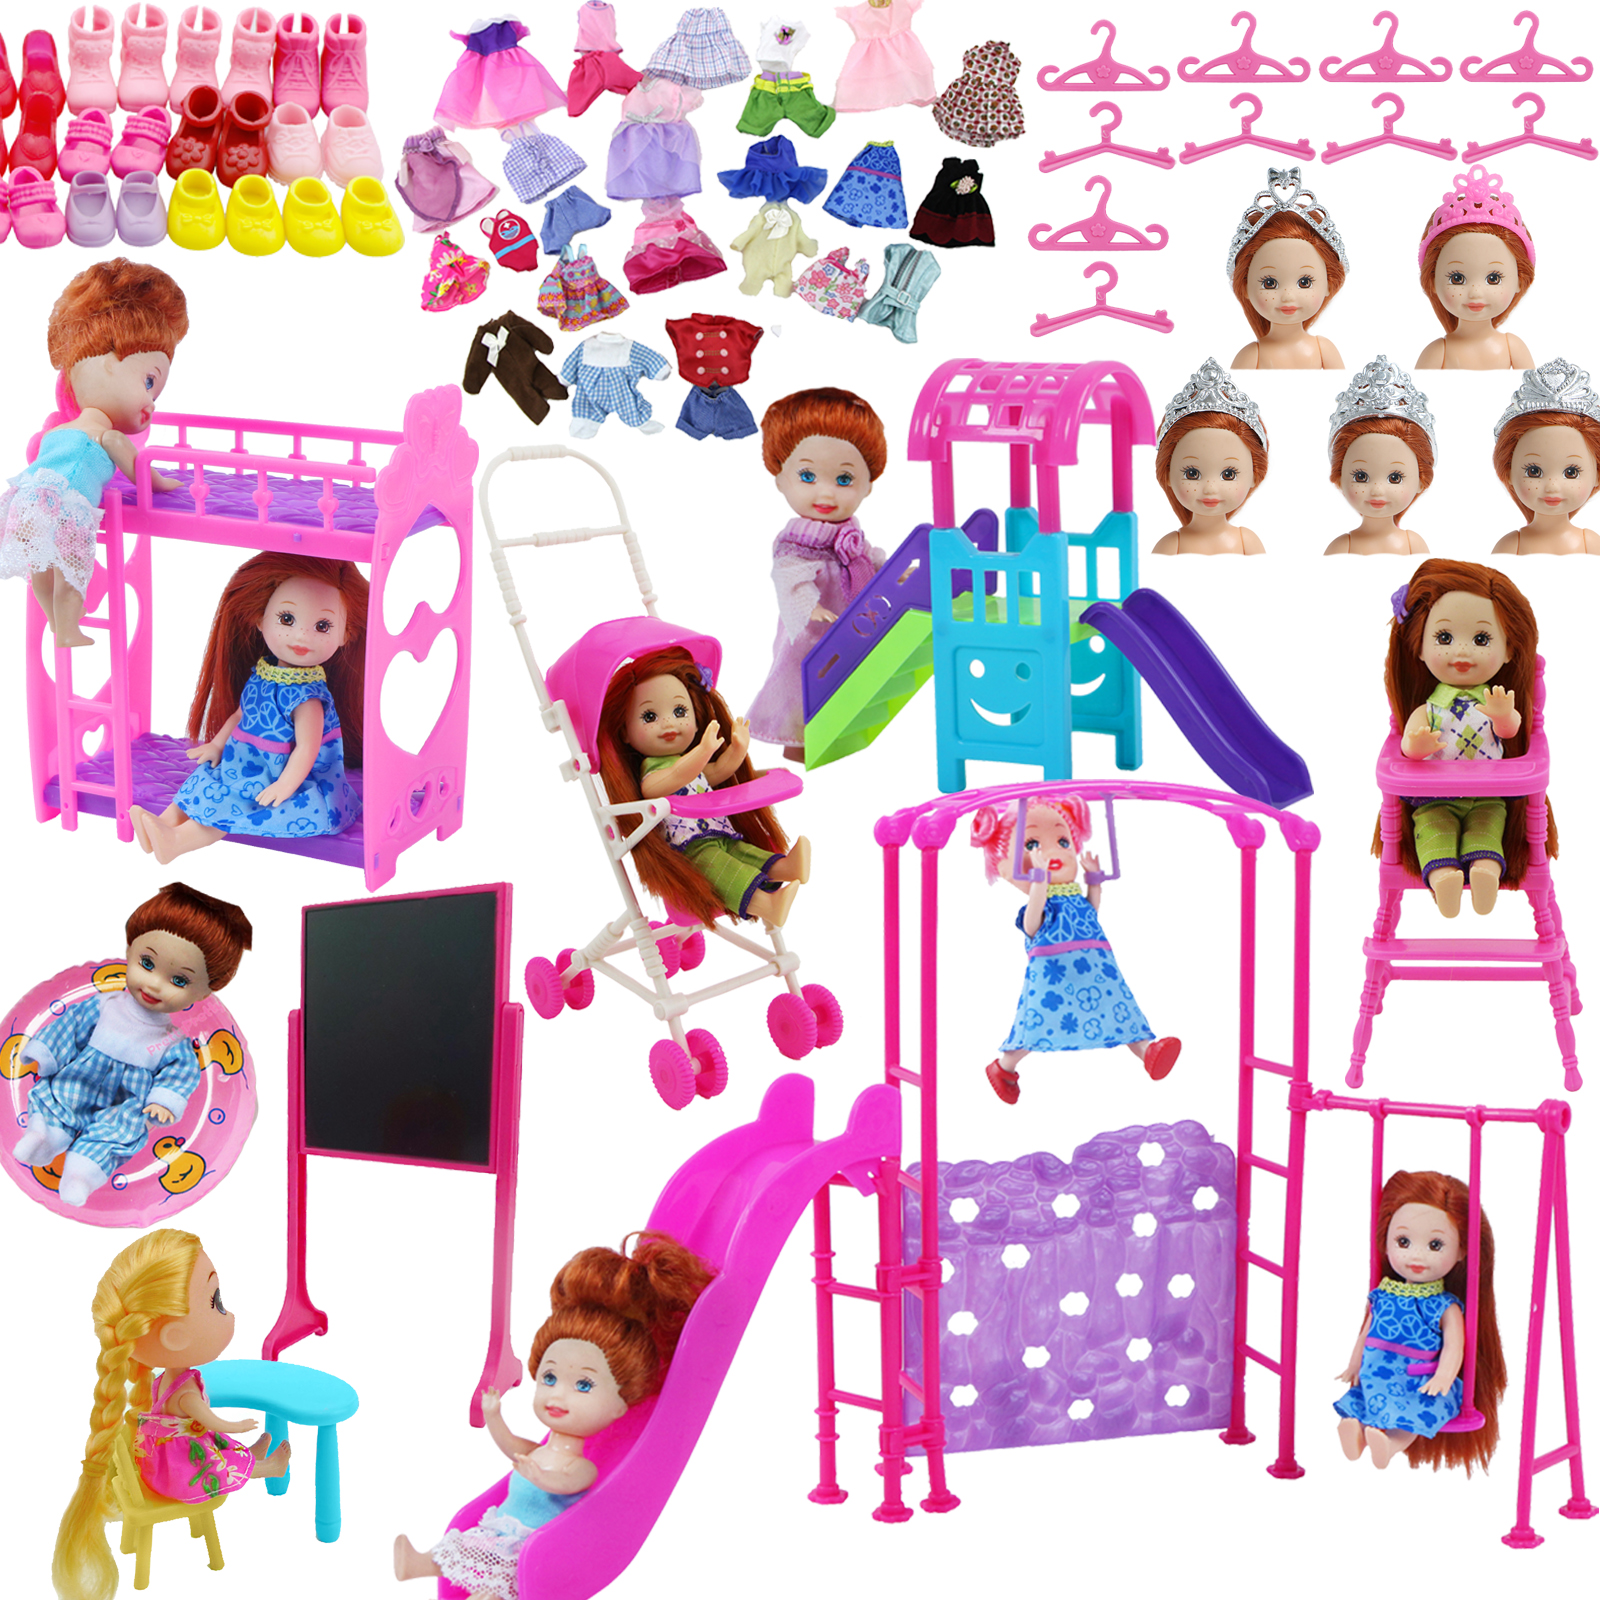 Nursery Pretend Play Toy Baby Bed Chair Doll Furniture Clothes Shoes for Barbie Doll Kelly Dollhouse Accessories Girl Toy Set(China)